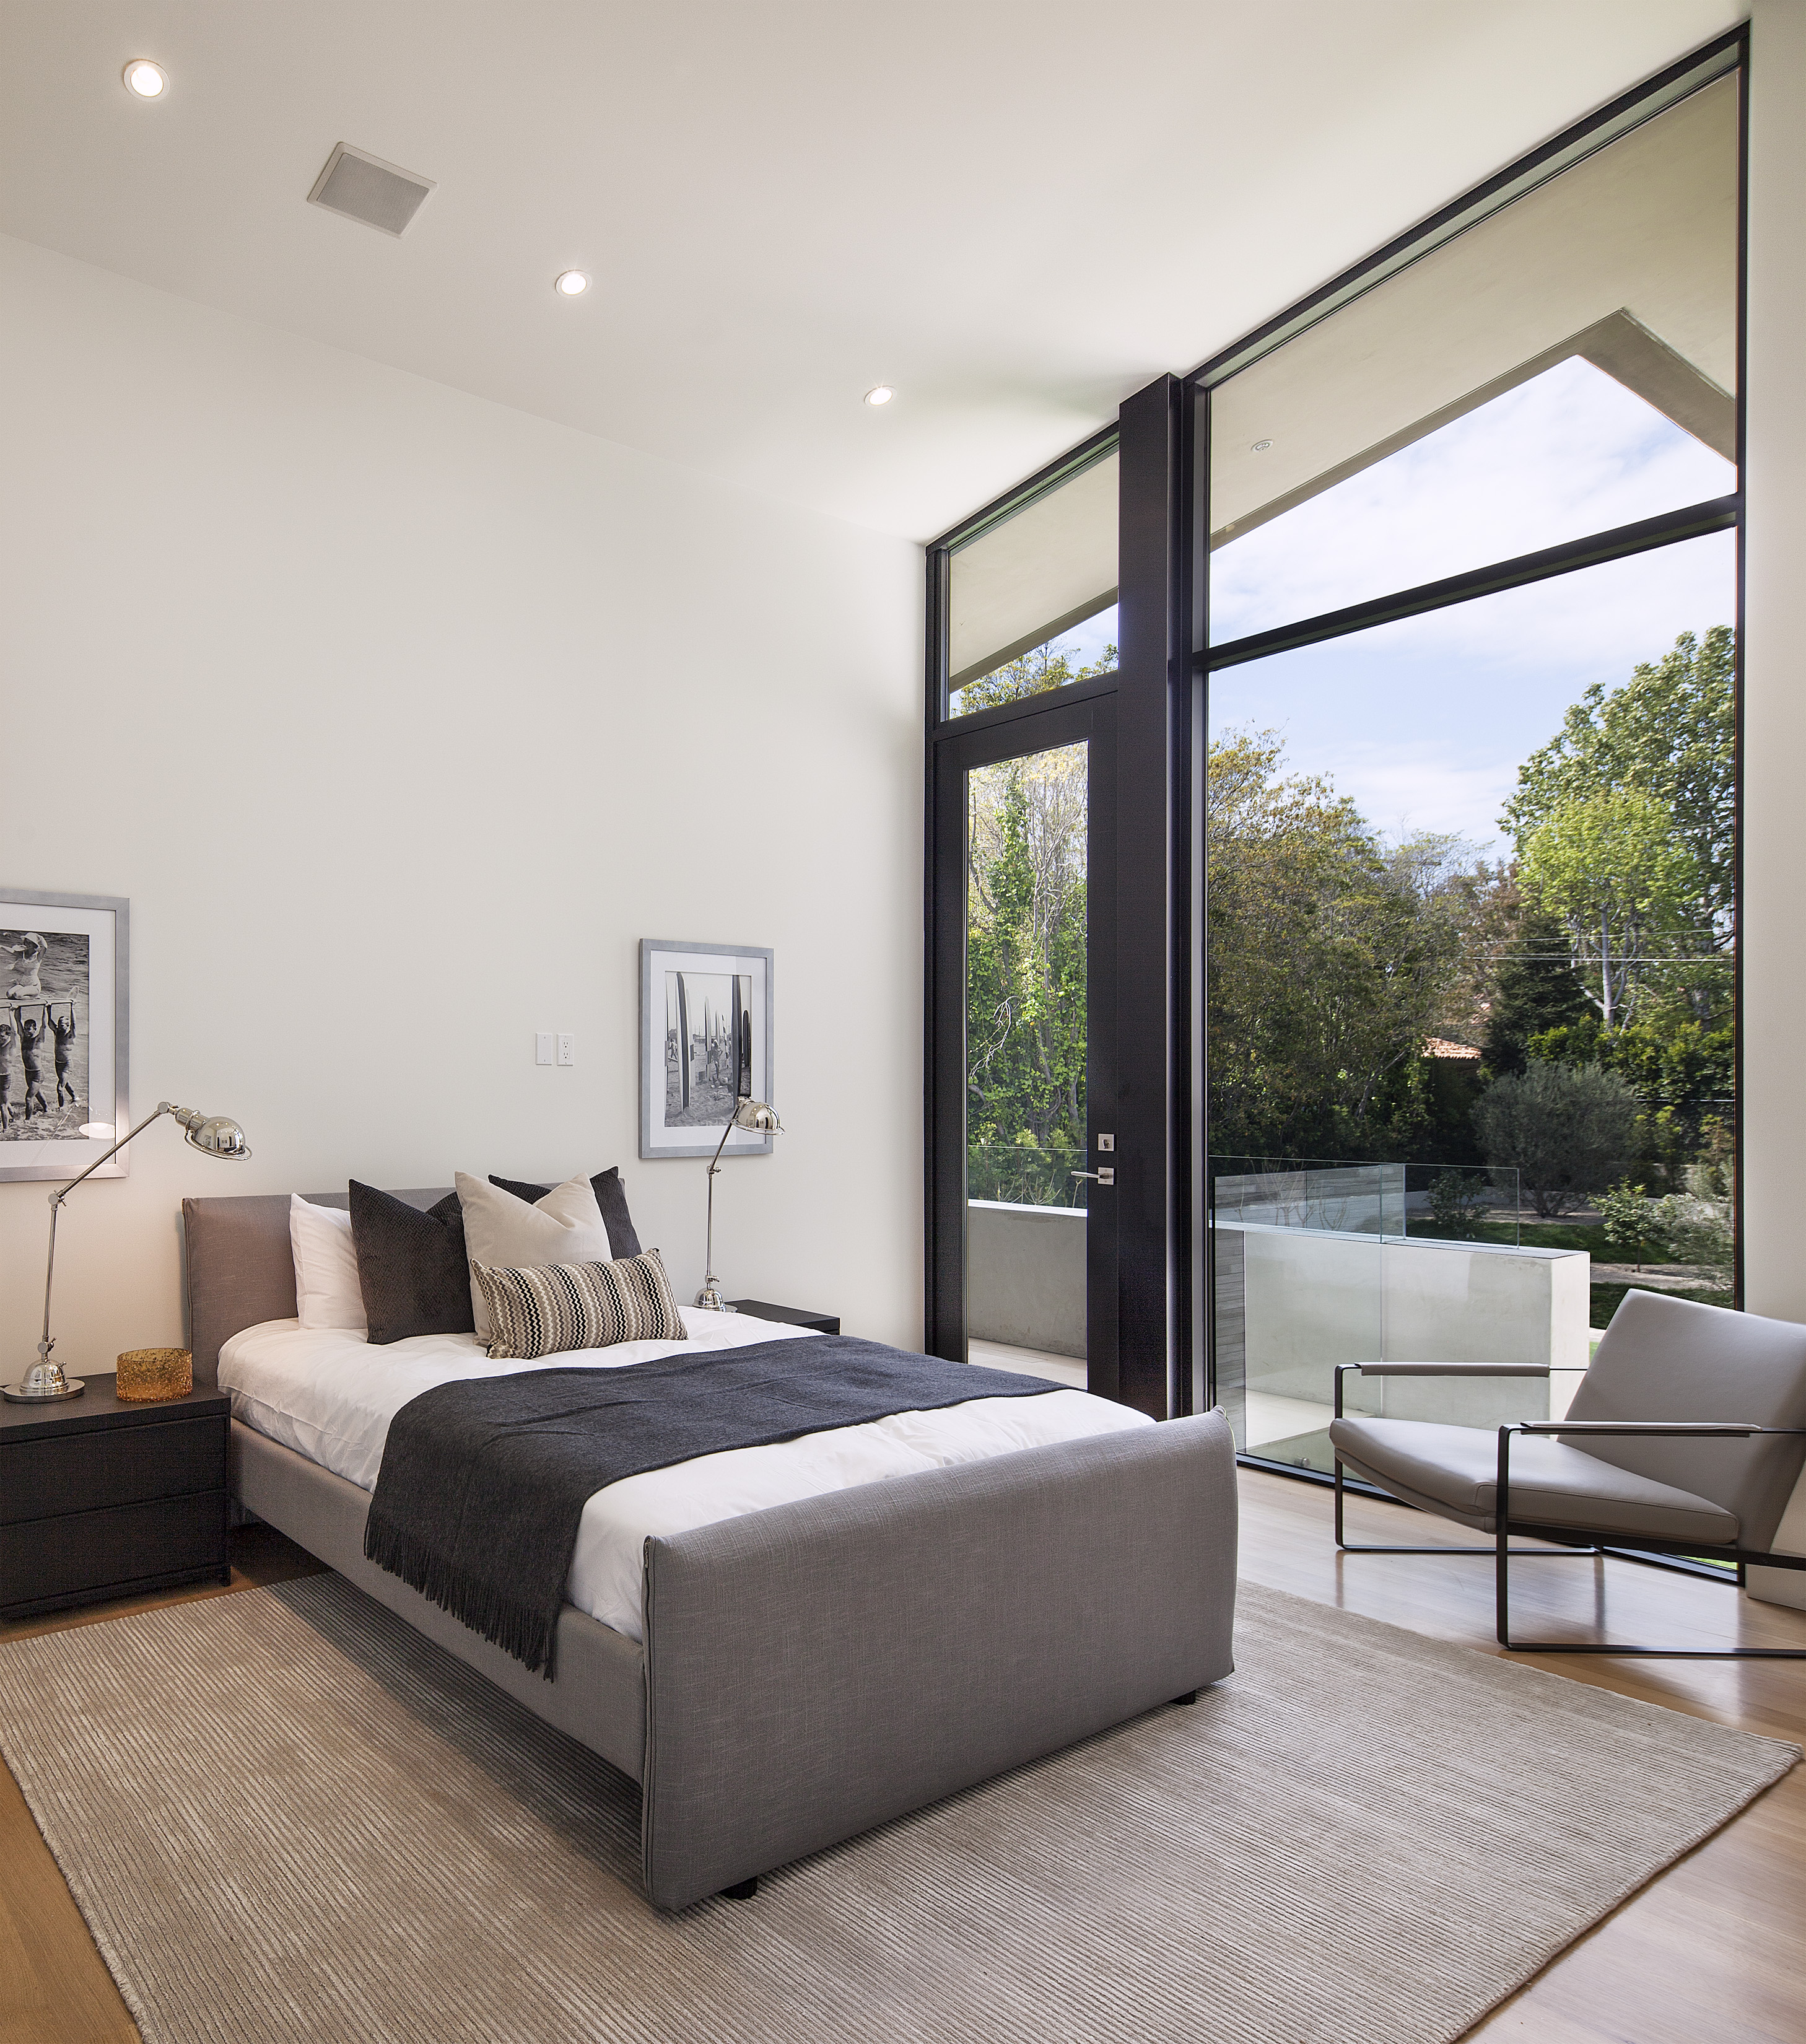 Bedroom continues the grey and natural wood motif of the upper floor, with glass patio door allowing for private balcony space.